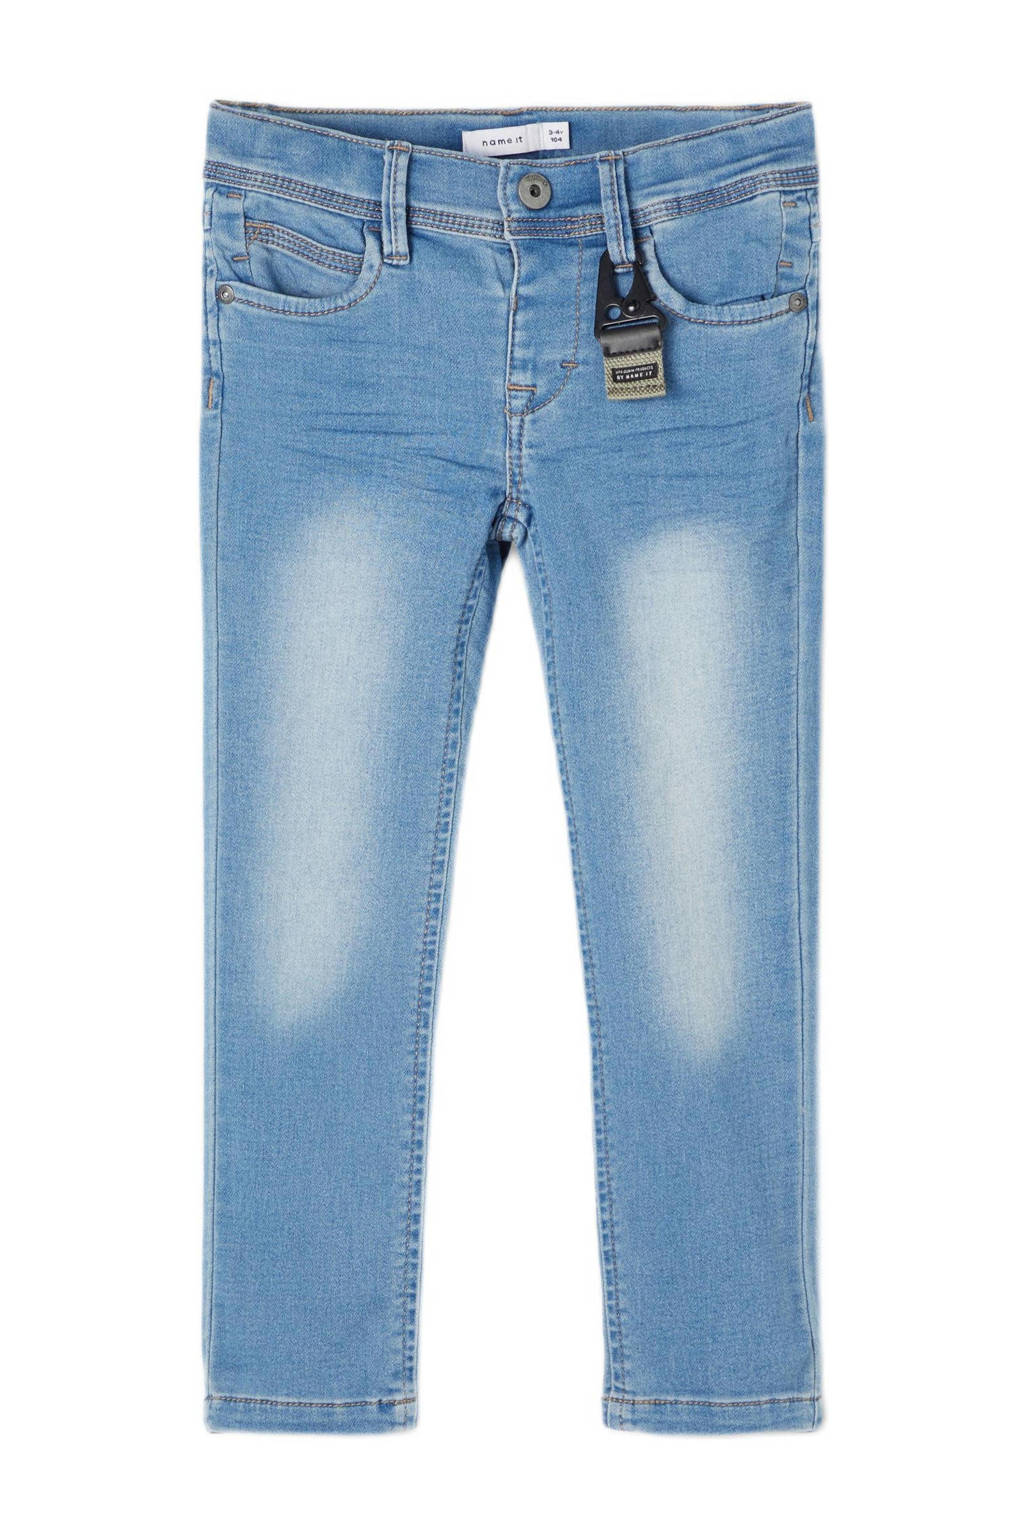 NAME IT MINI slim fit jeans Sofus light blue denim, Light blue denim